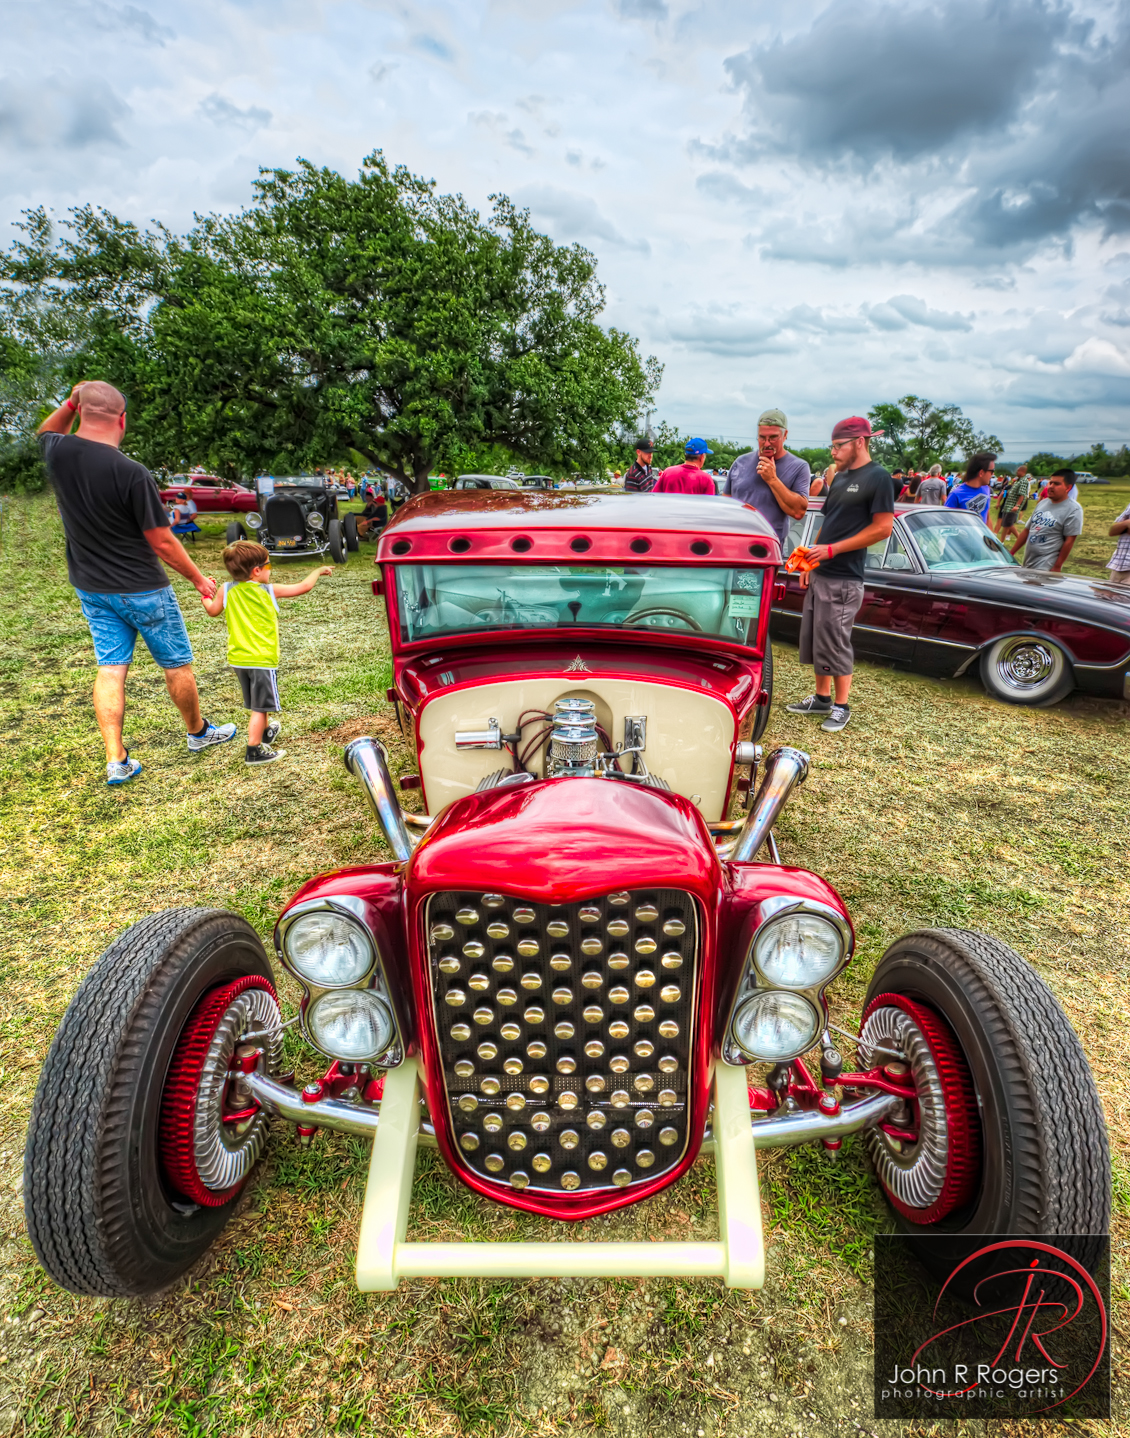 Lone Star Rod & Kustom Roundup Car